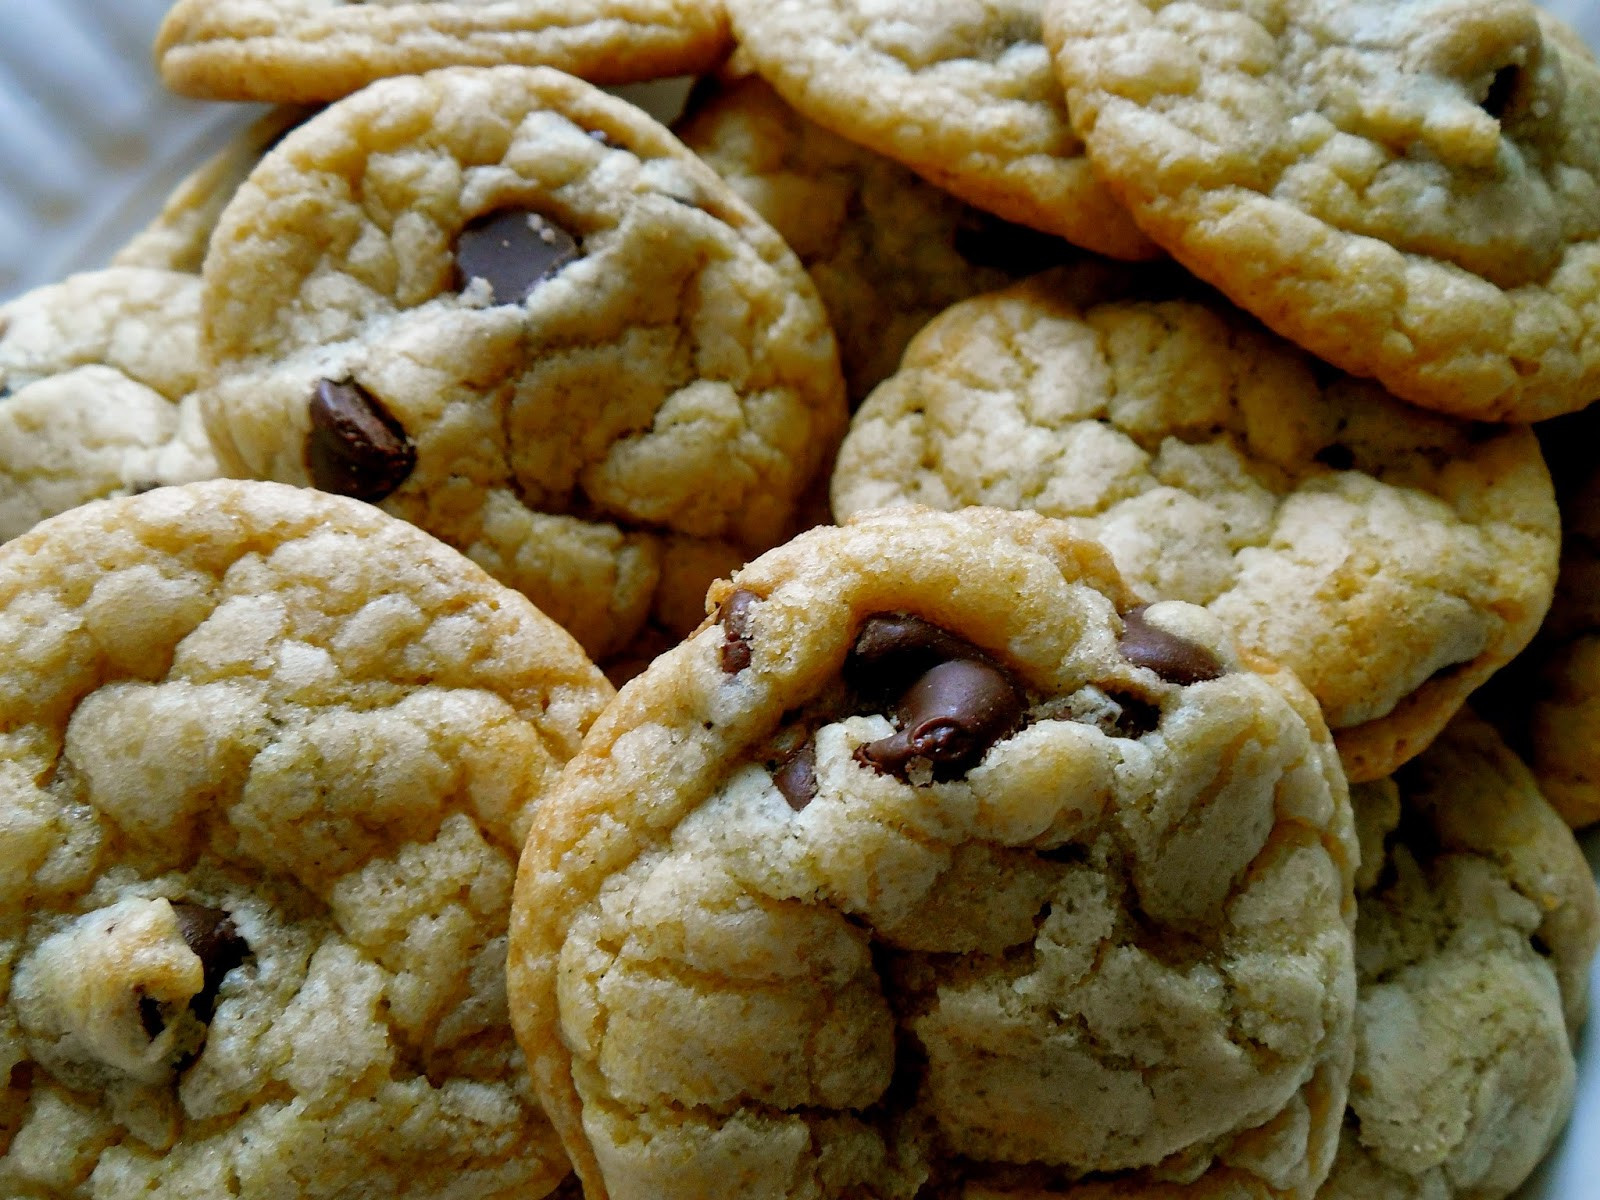 Melted Butter Chocolate Chip Cookies  Adirondack Baker Melted Butter Chocolate Chip Cookies